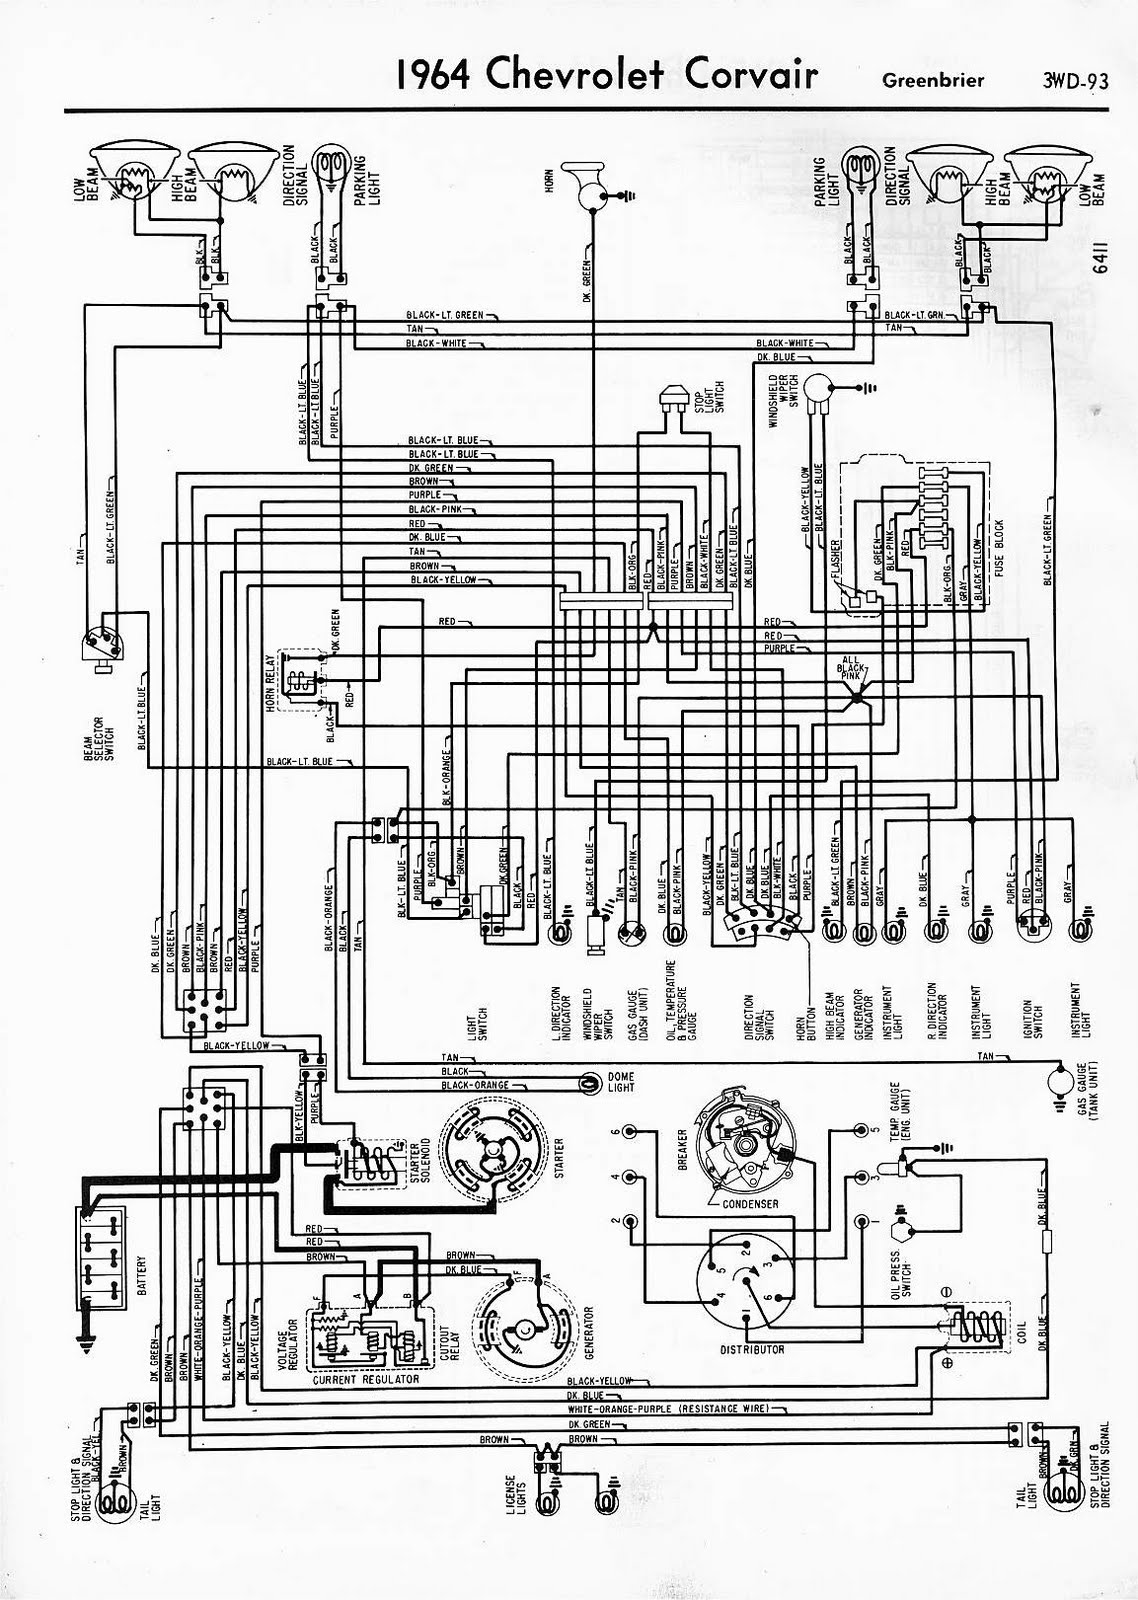 free auto wiring diagram rh autowiringdiagram blogspot com 66 Mustang Wiring Diagram for Dash honda dash 110 wiring diagram